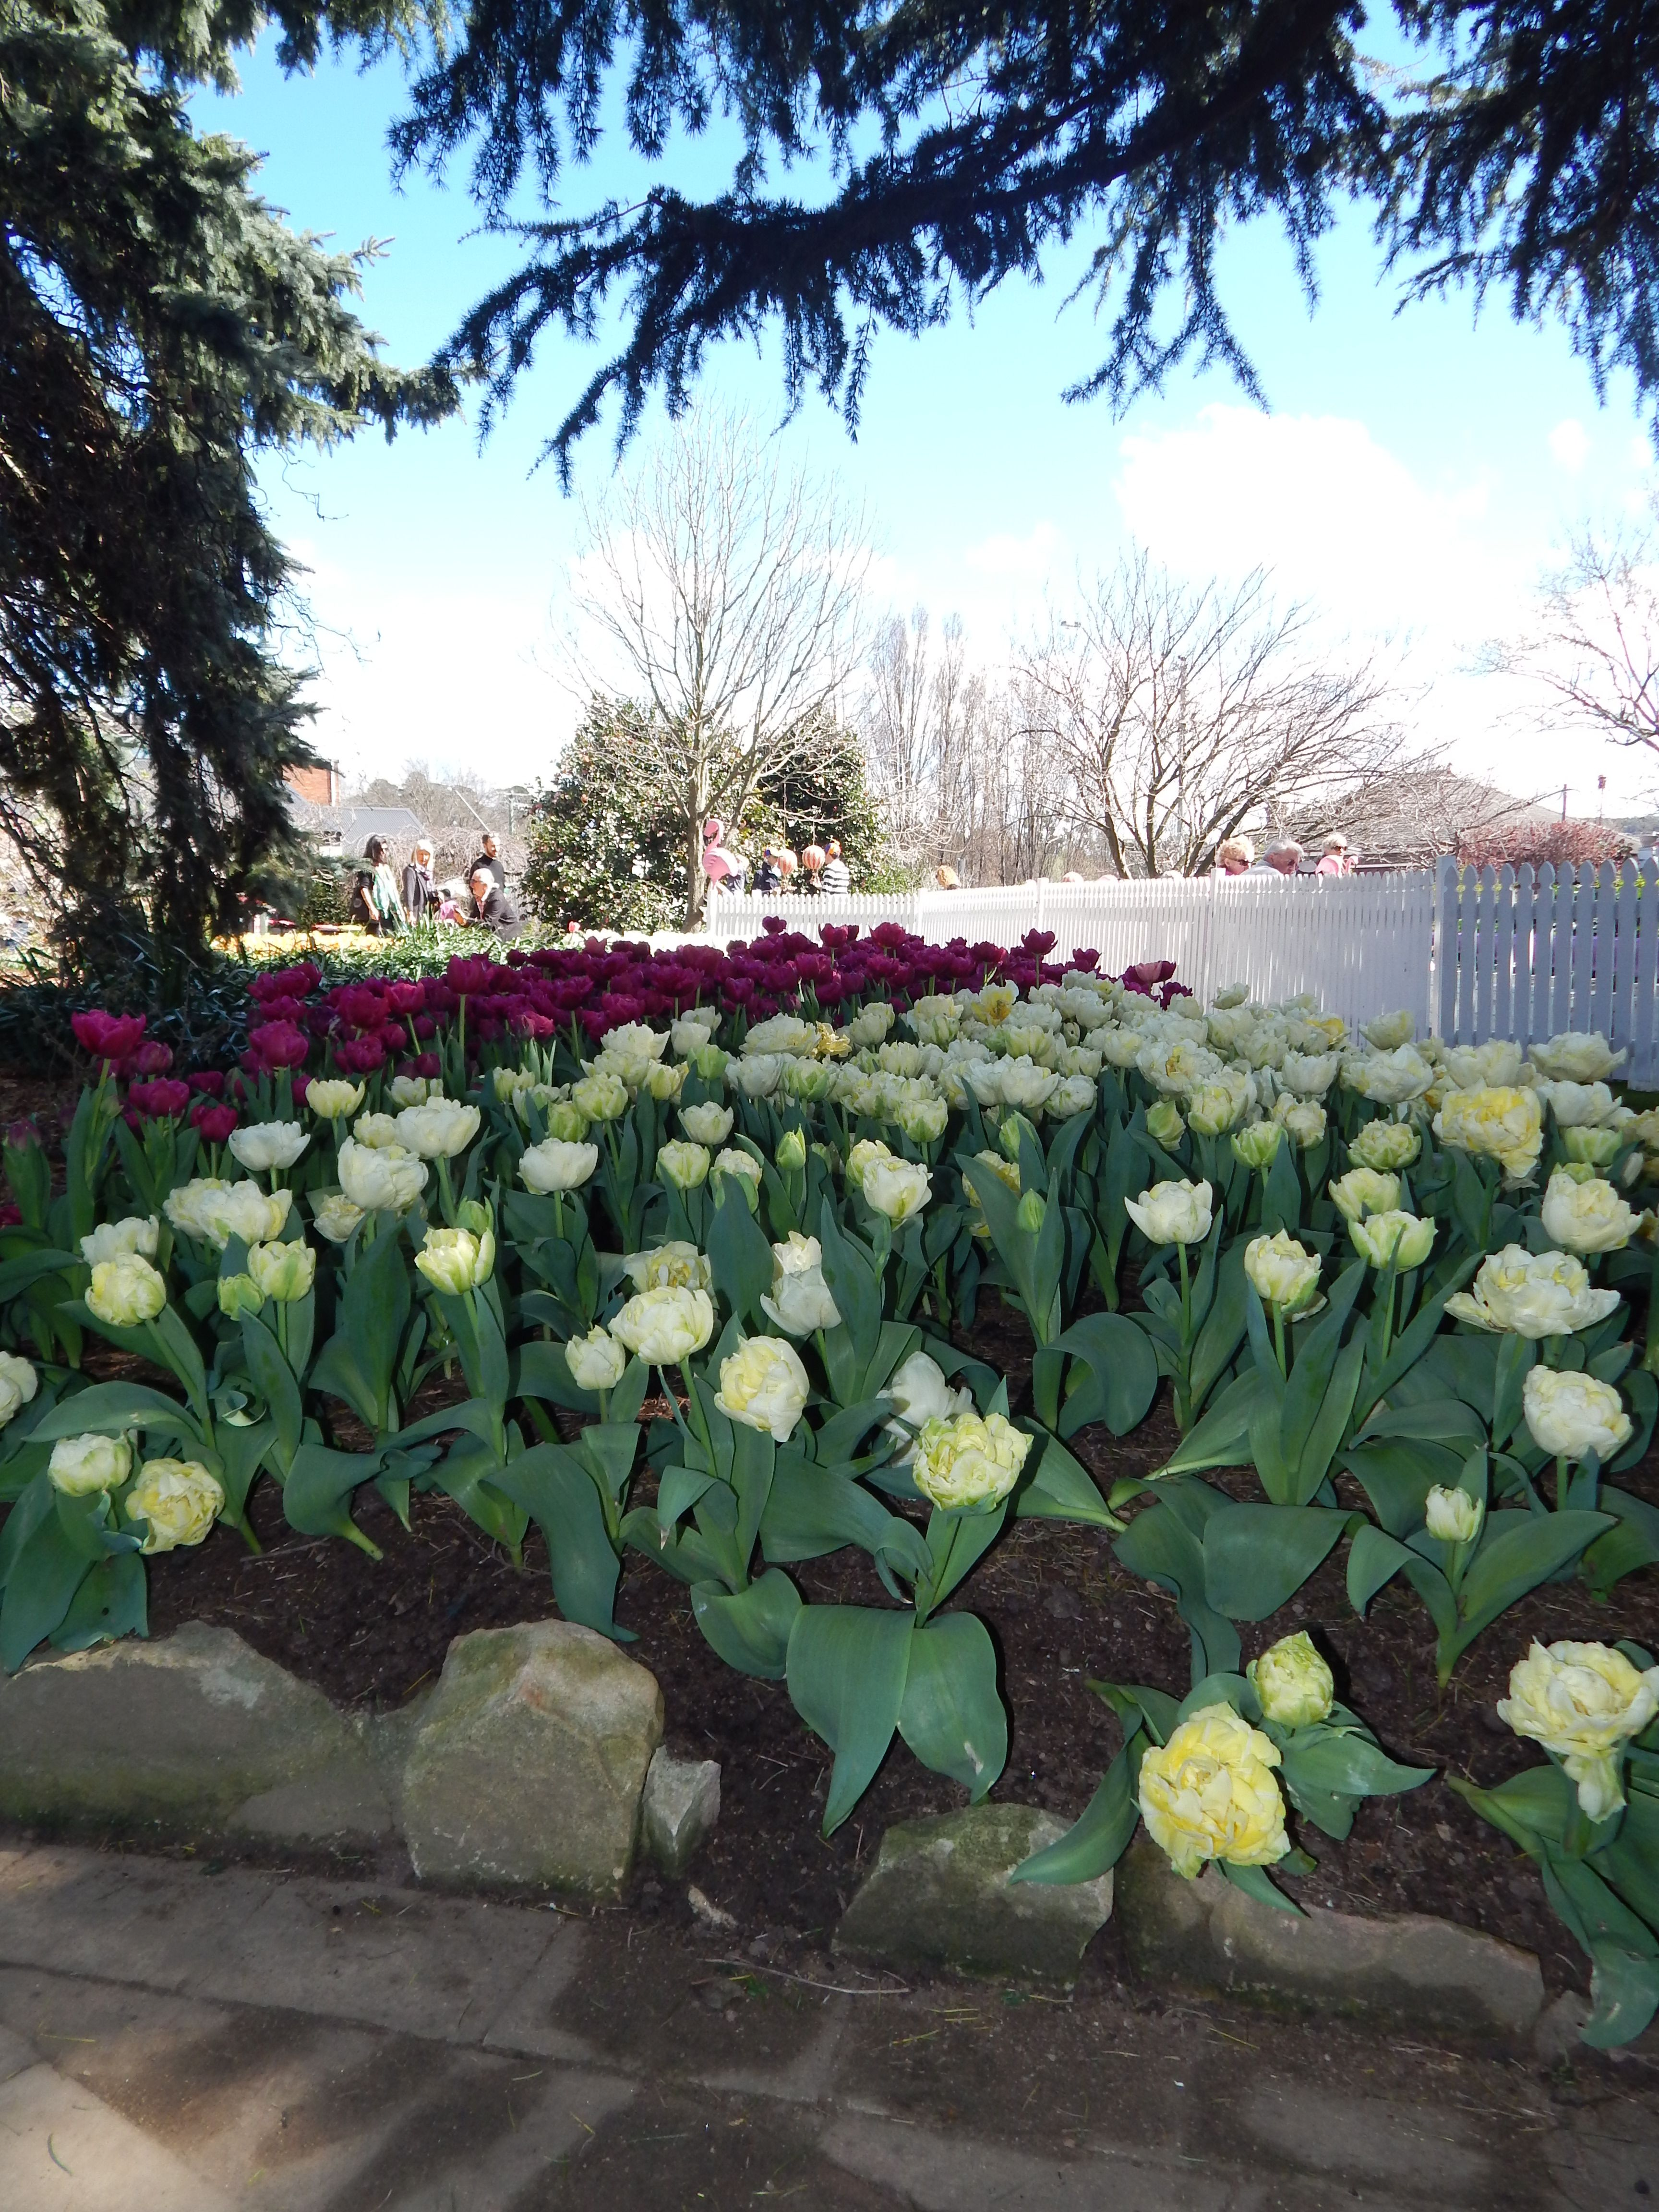 Spring Flowers At The Bowral Tulip Festival Australia Are